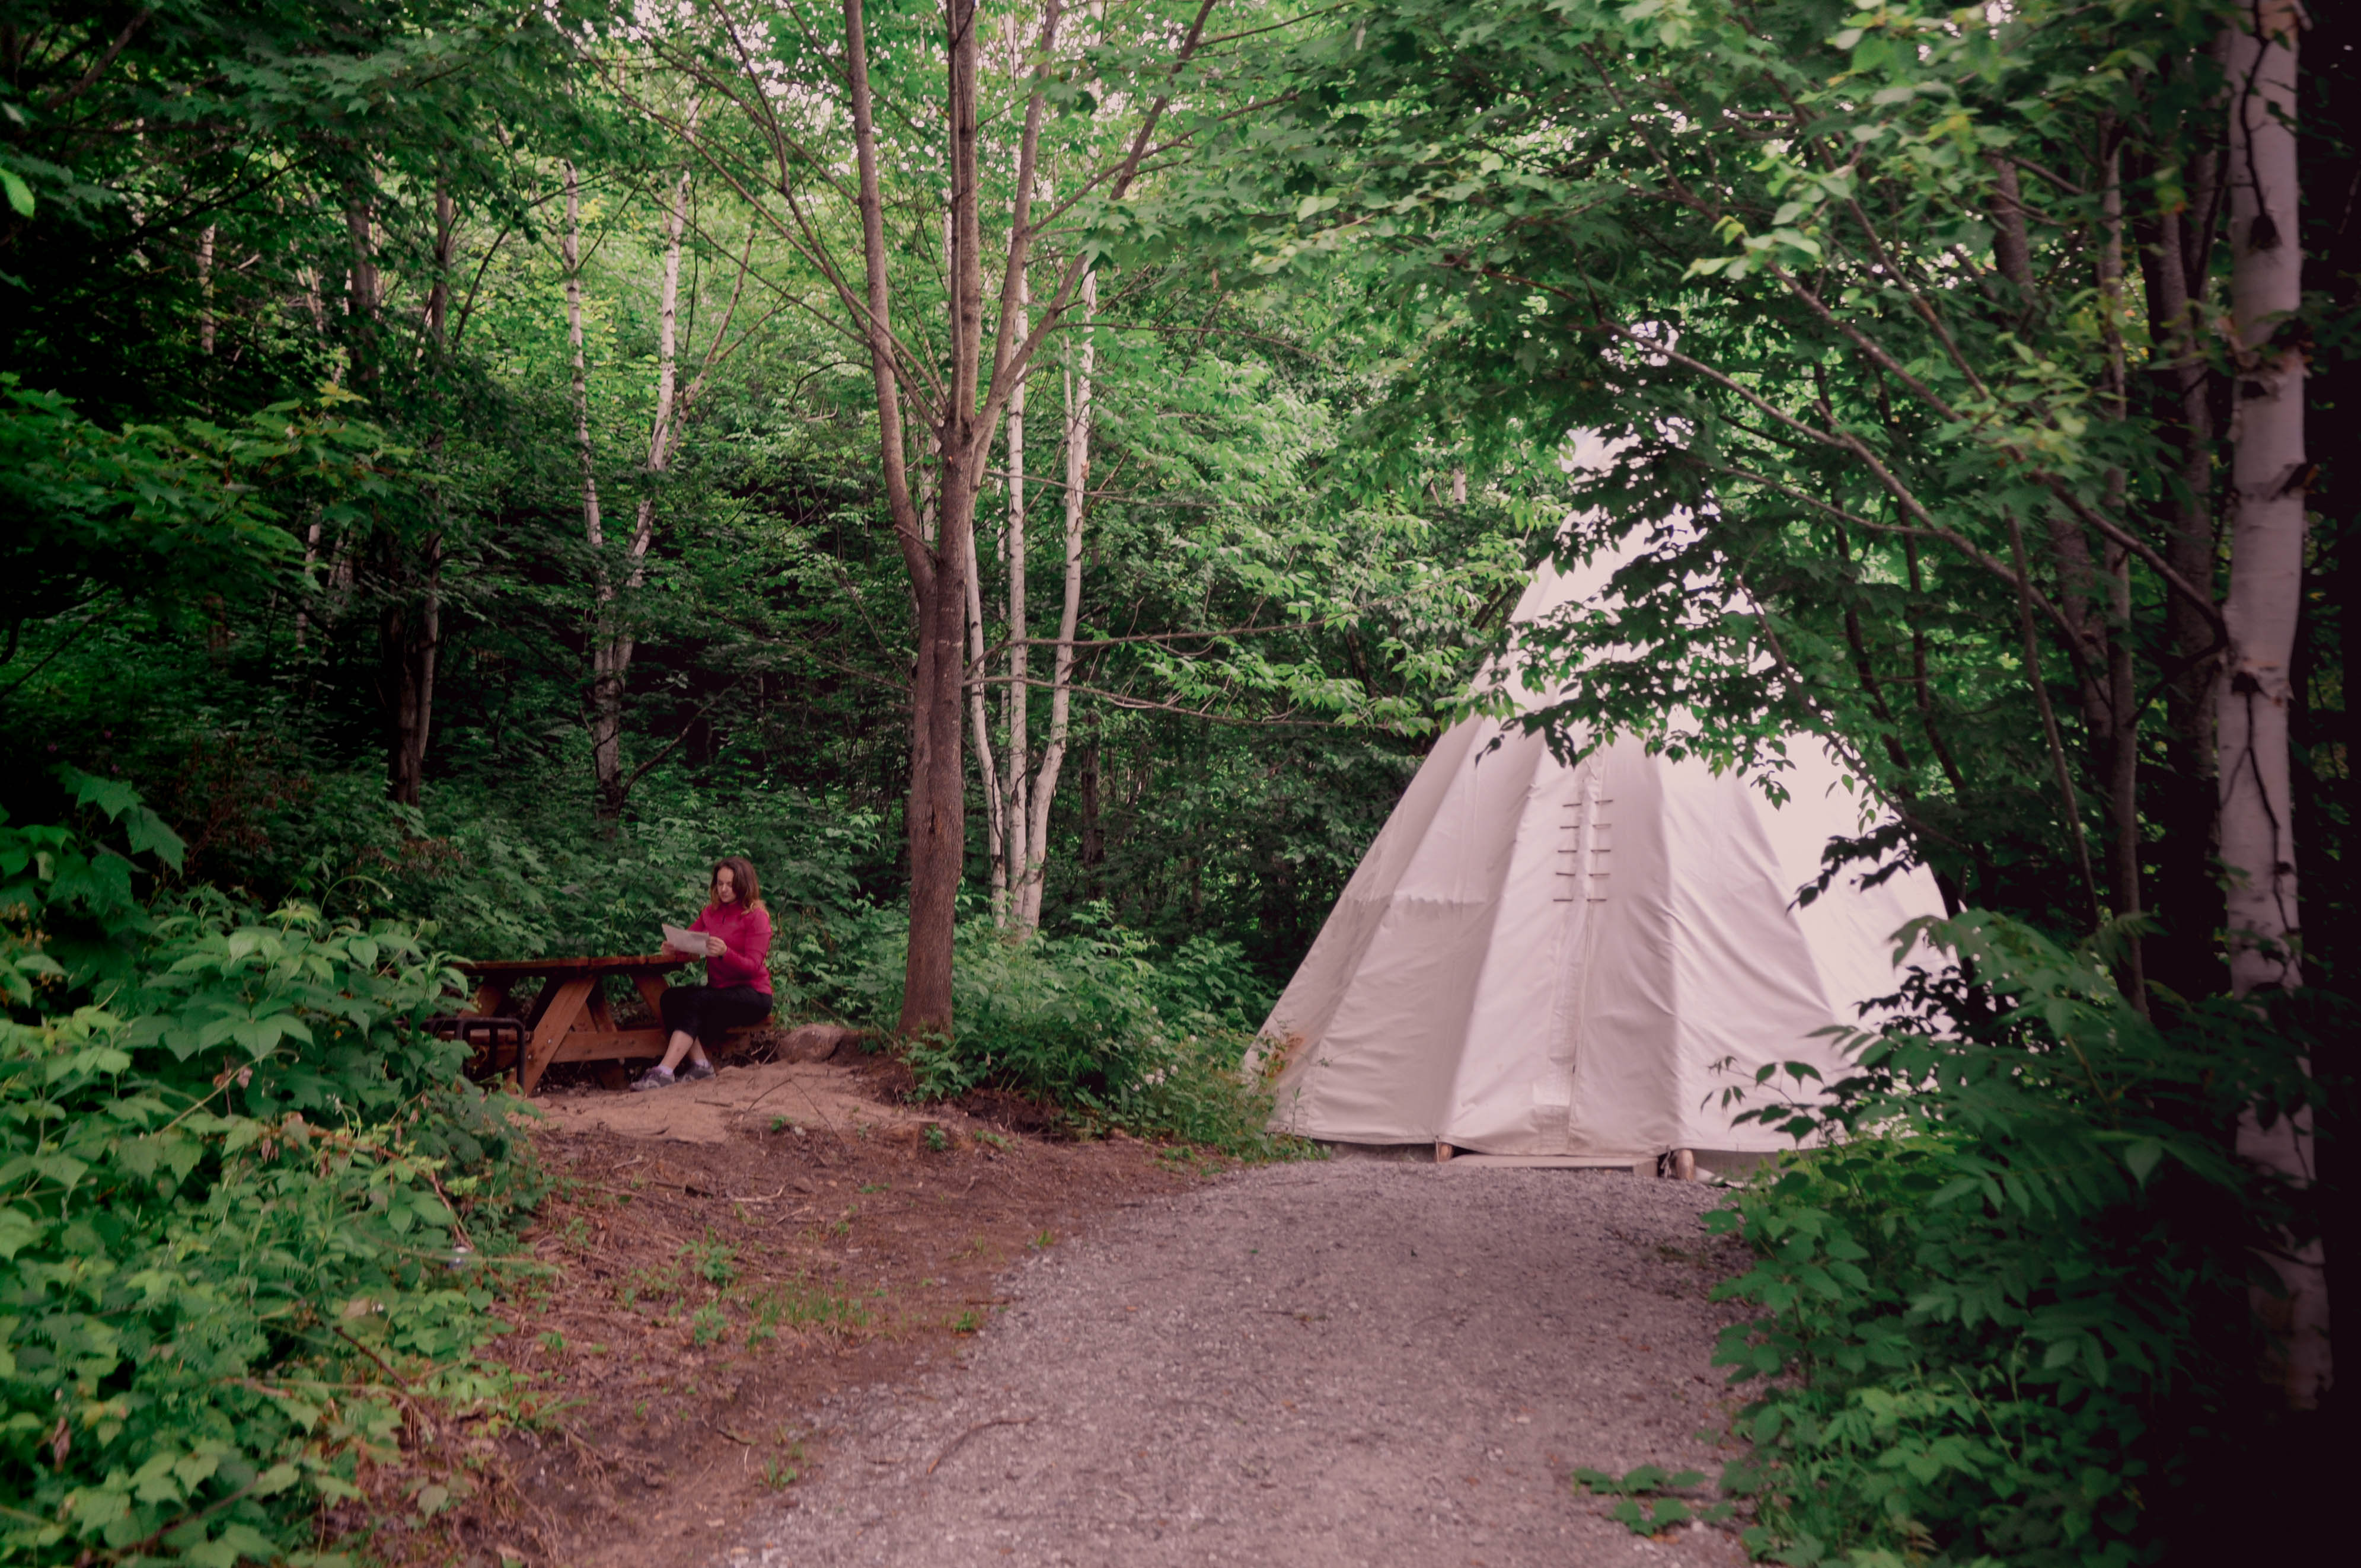 A Complete Guide to Camping at Parc Omega